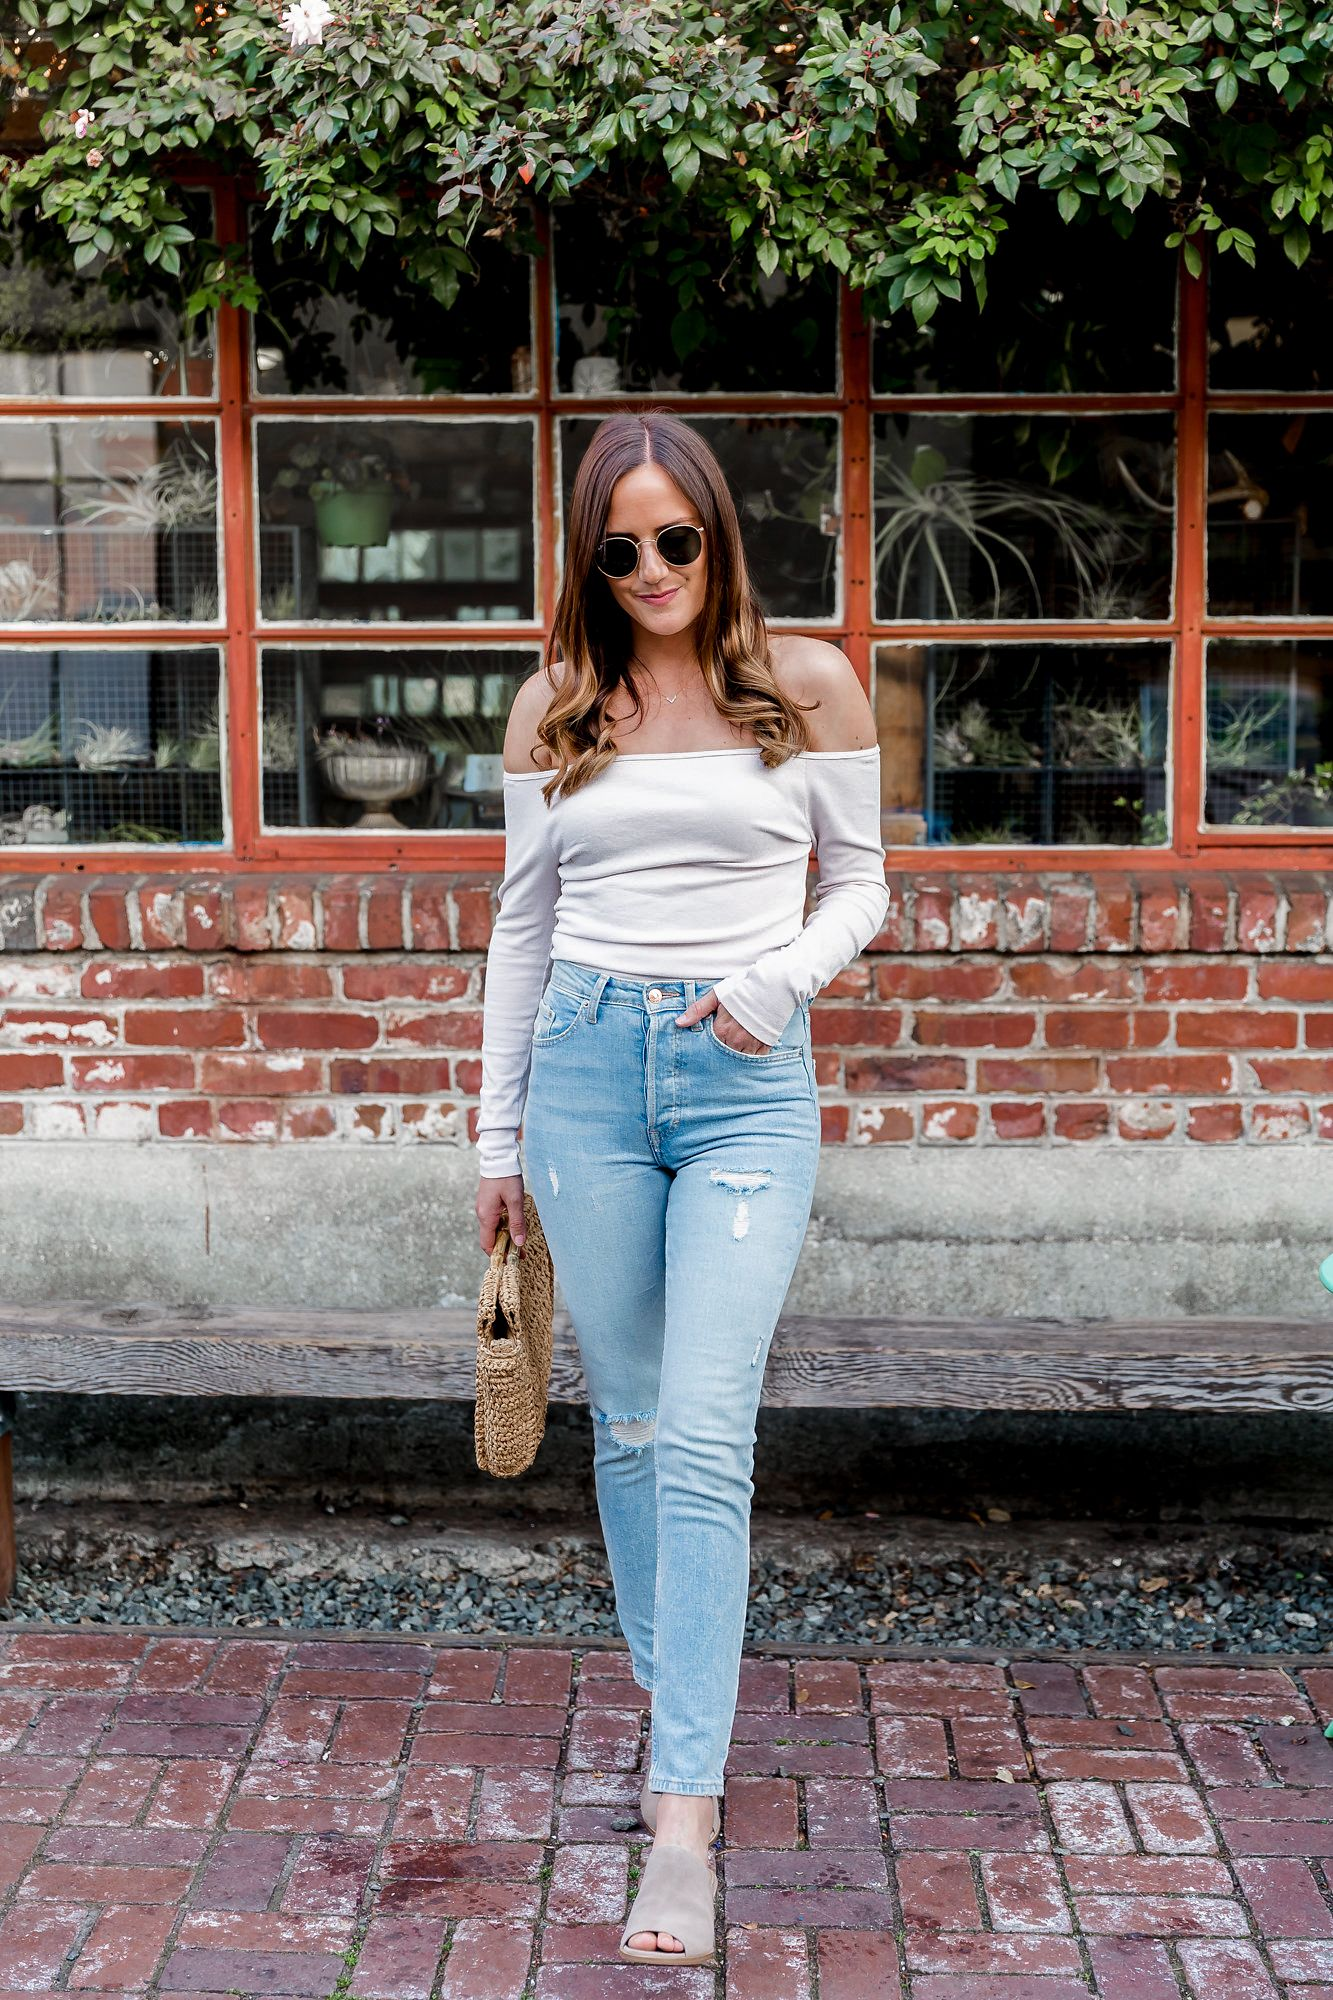 b2f433d9ddd fitted off shoulder top, spring style, spring outfit ideas, cream top and  lightwash jeans outfit, white off shoulder top outfit, taupe mules outfit,  ...